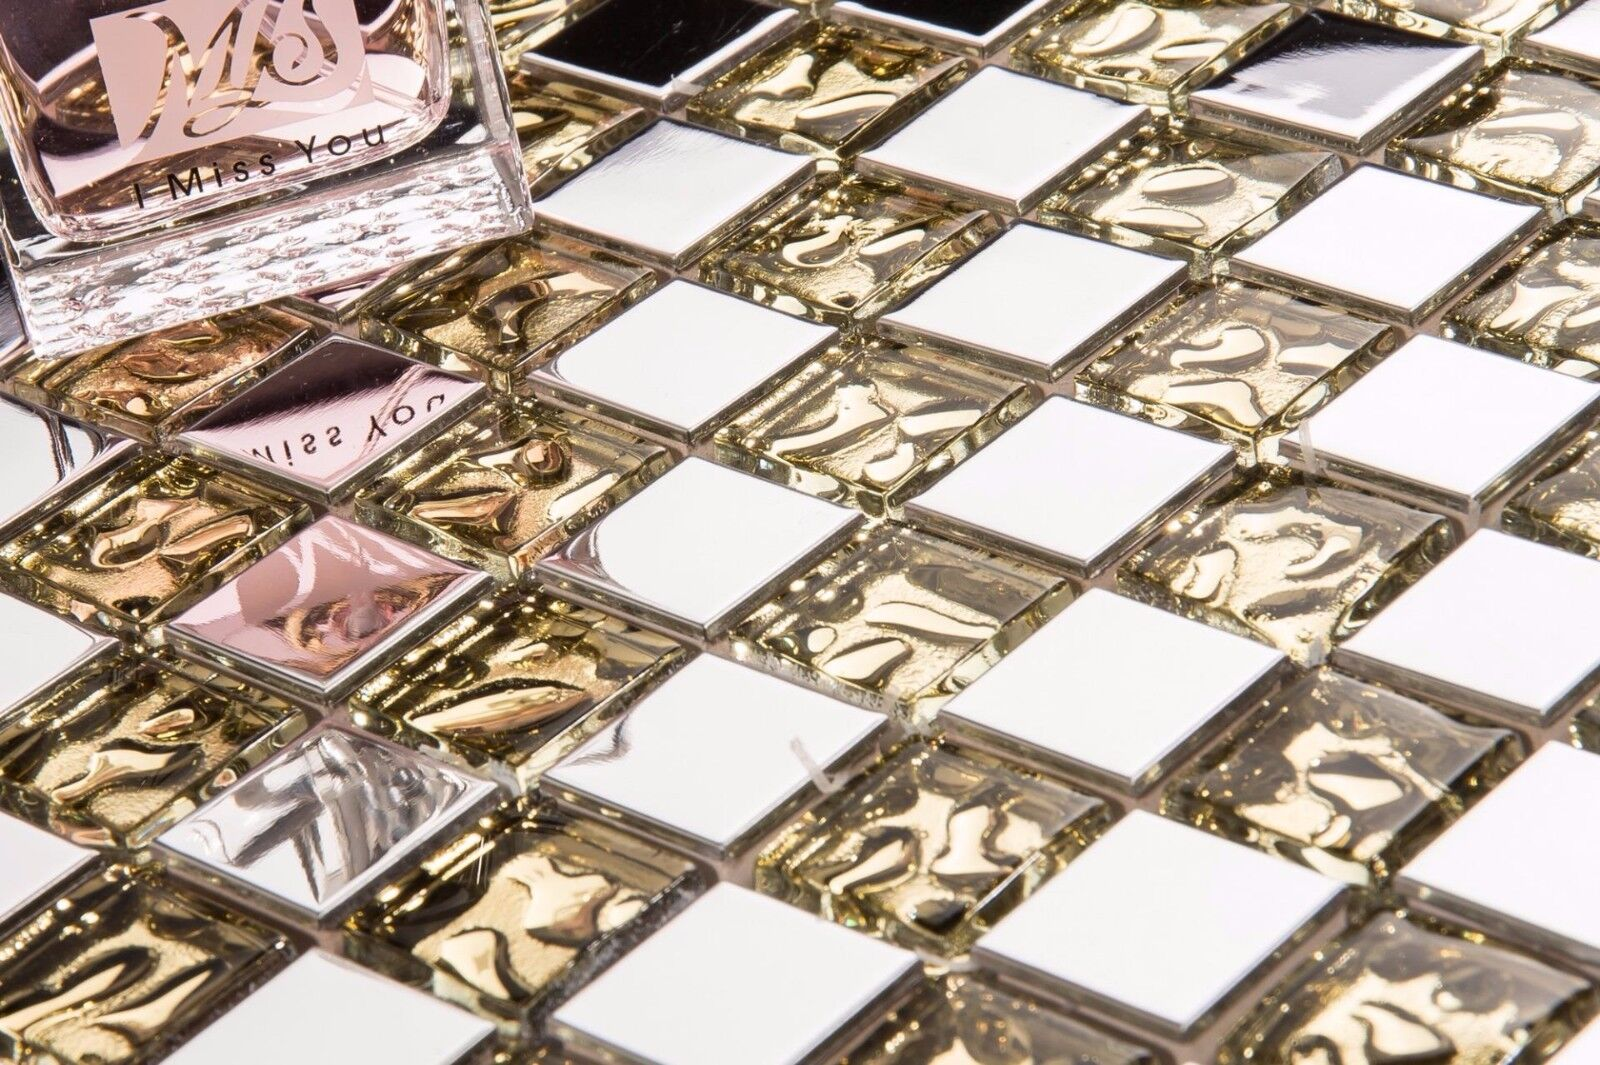 1 SQ M Polished Stainless Steel and Patterned Gold Glass Mosaic Tile Sheet 0157